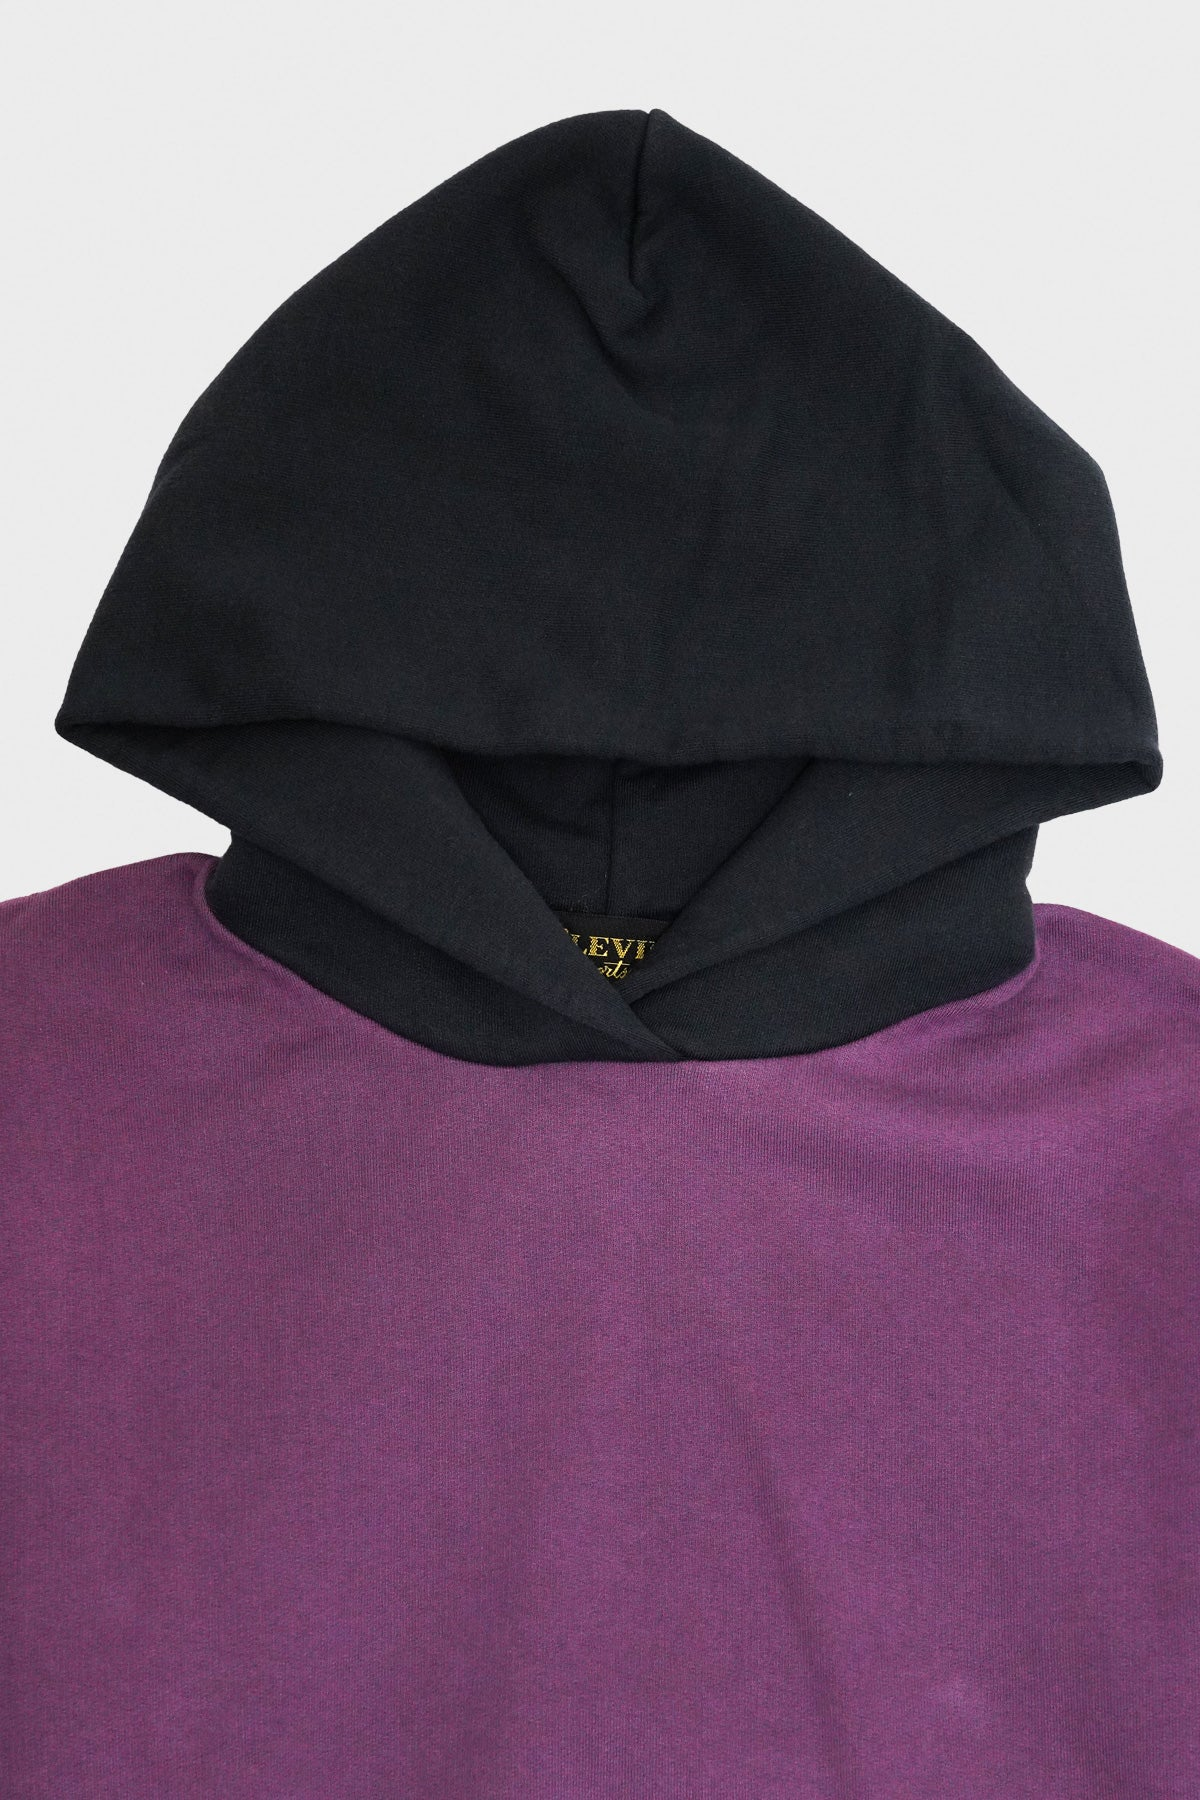 levis vintage clothing lvc 1950's Hoodie - Purple Black